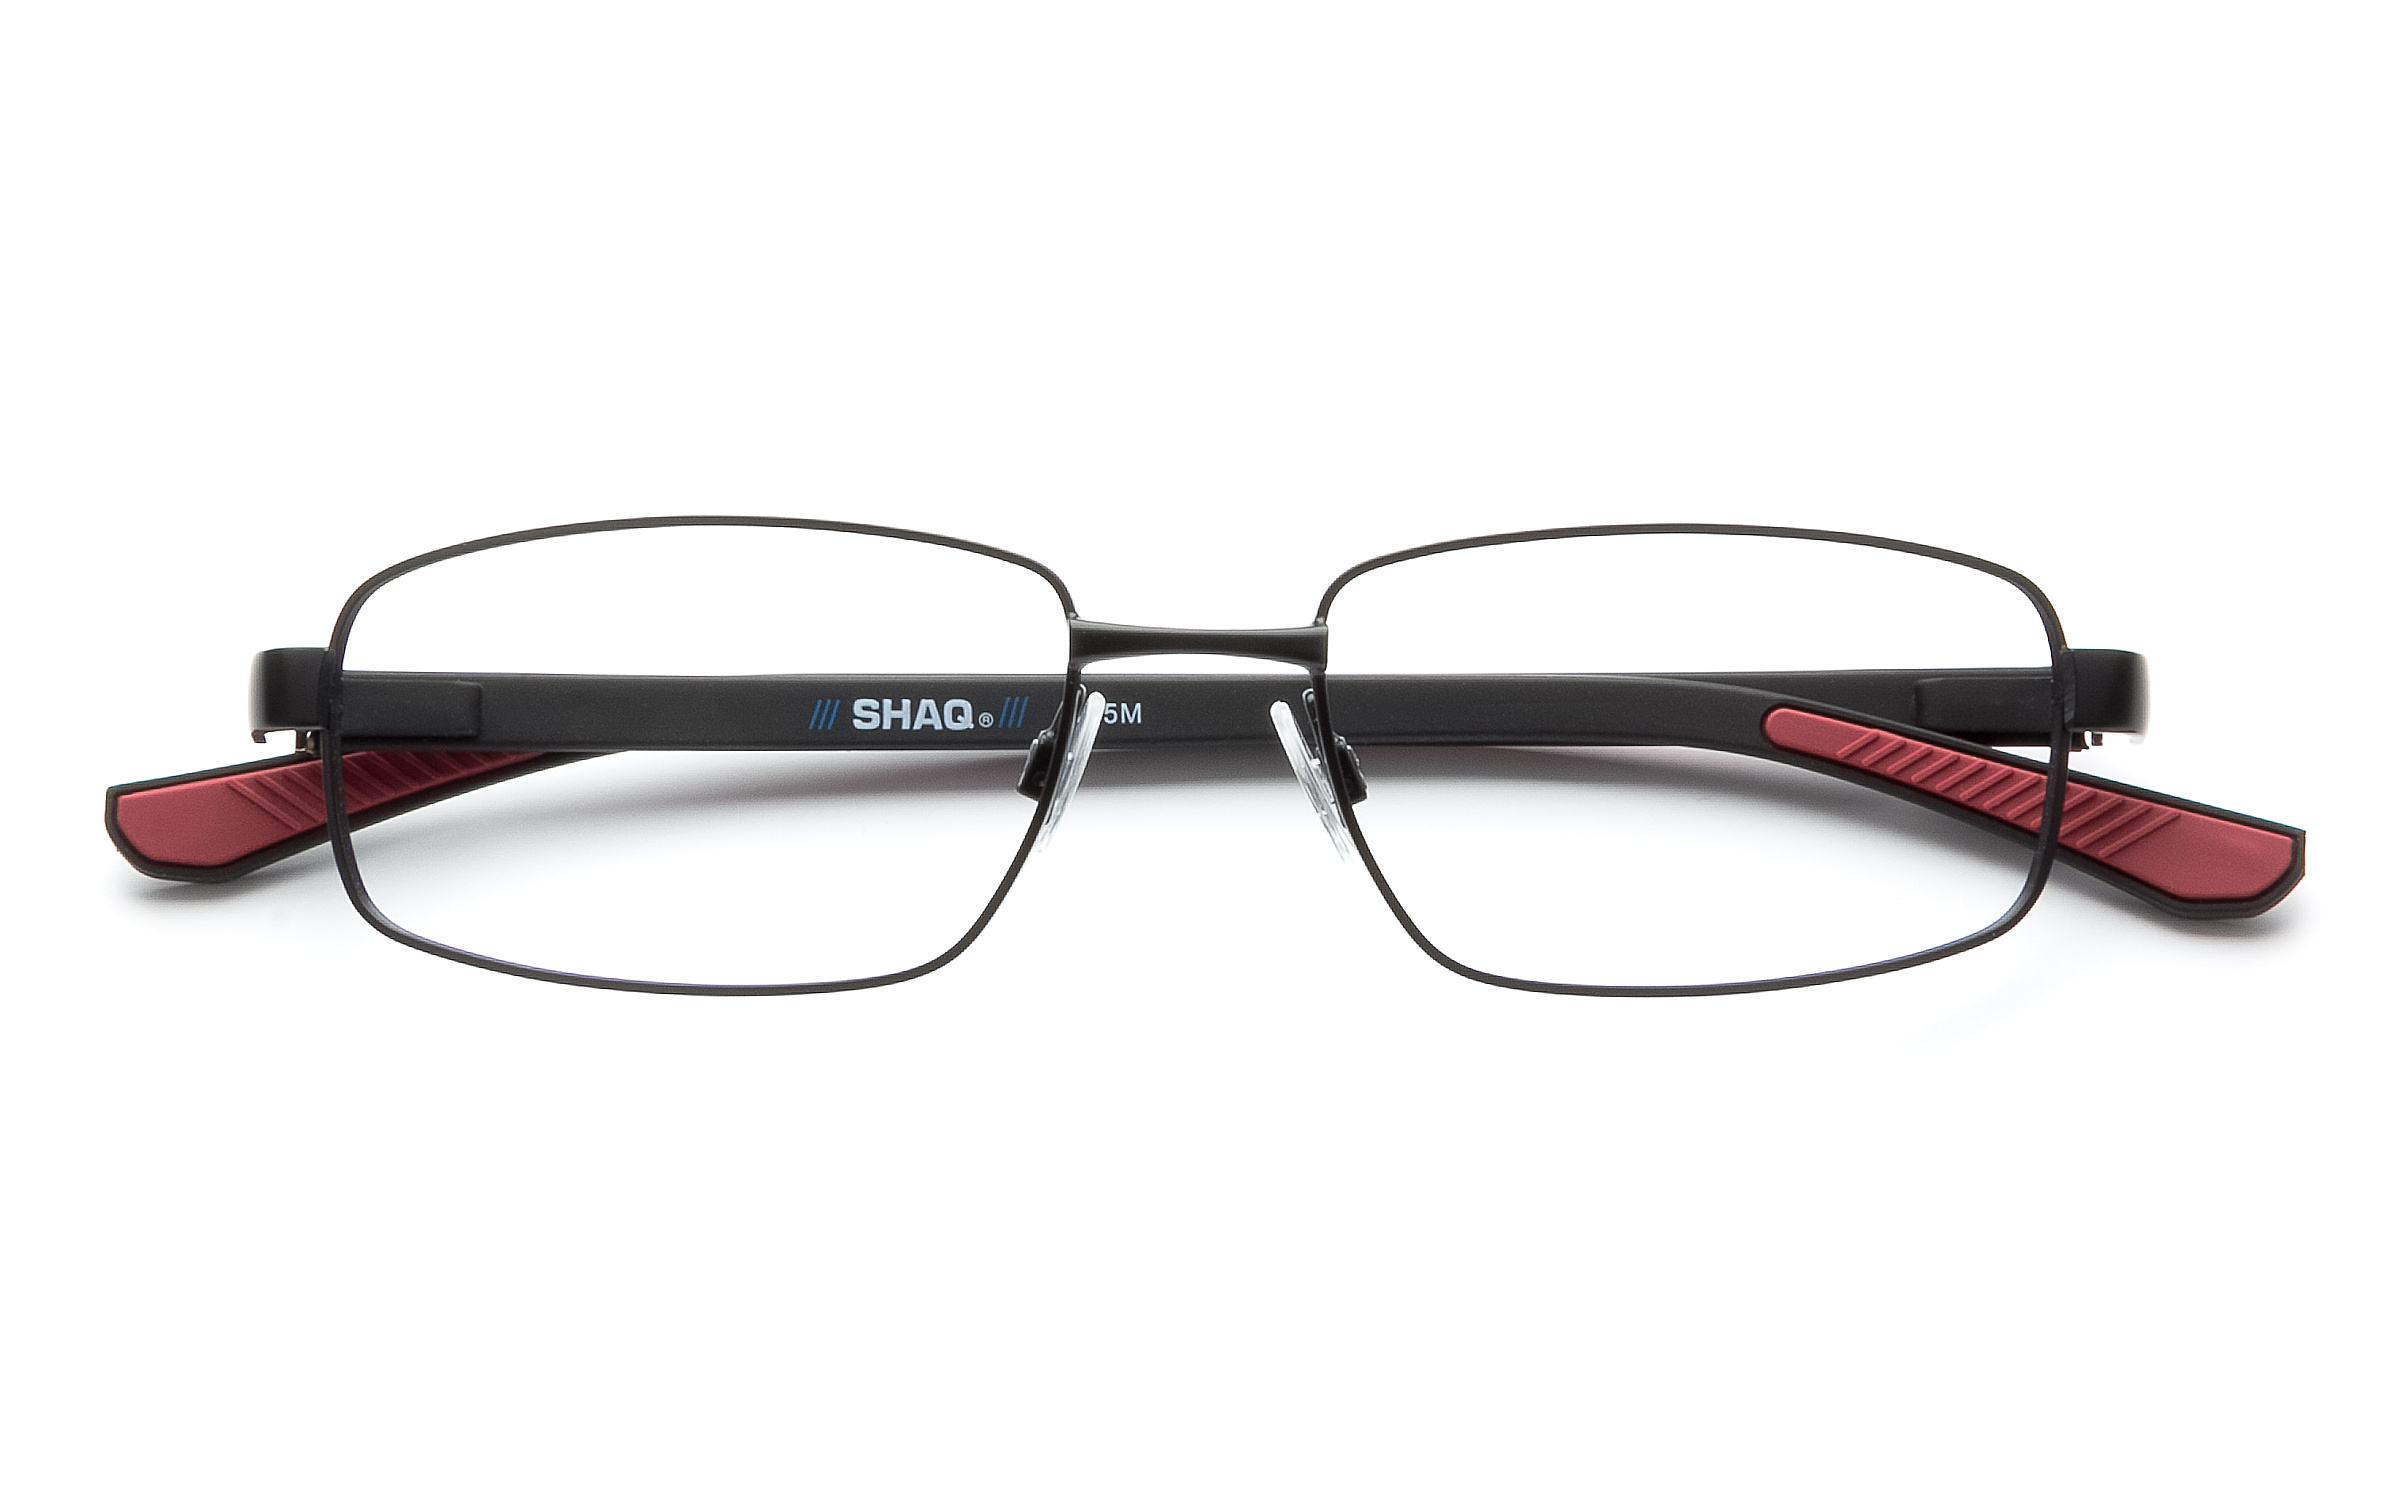 shop glasses online rgp4  product image of Shaquille O Neal QD105M-54 Black